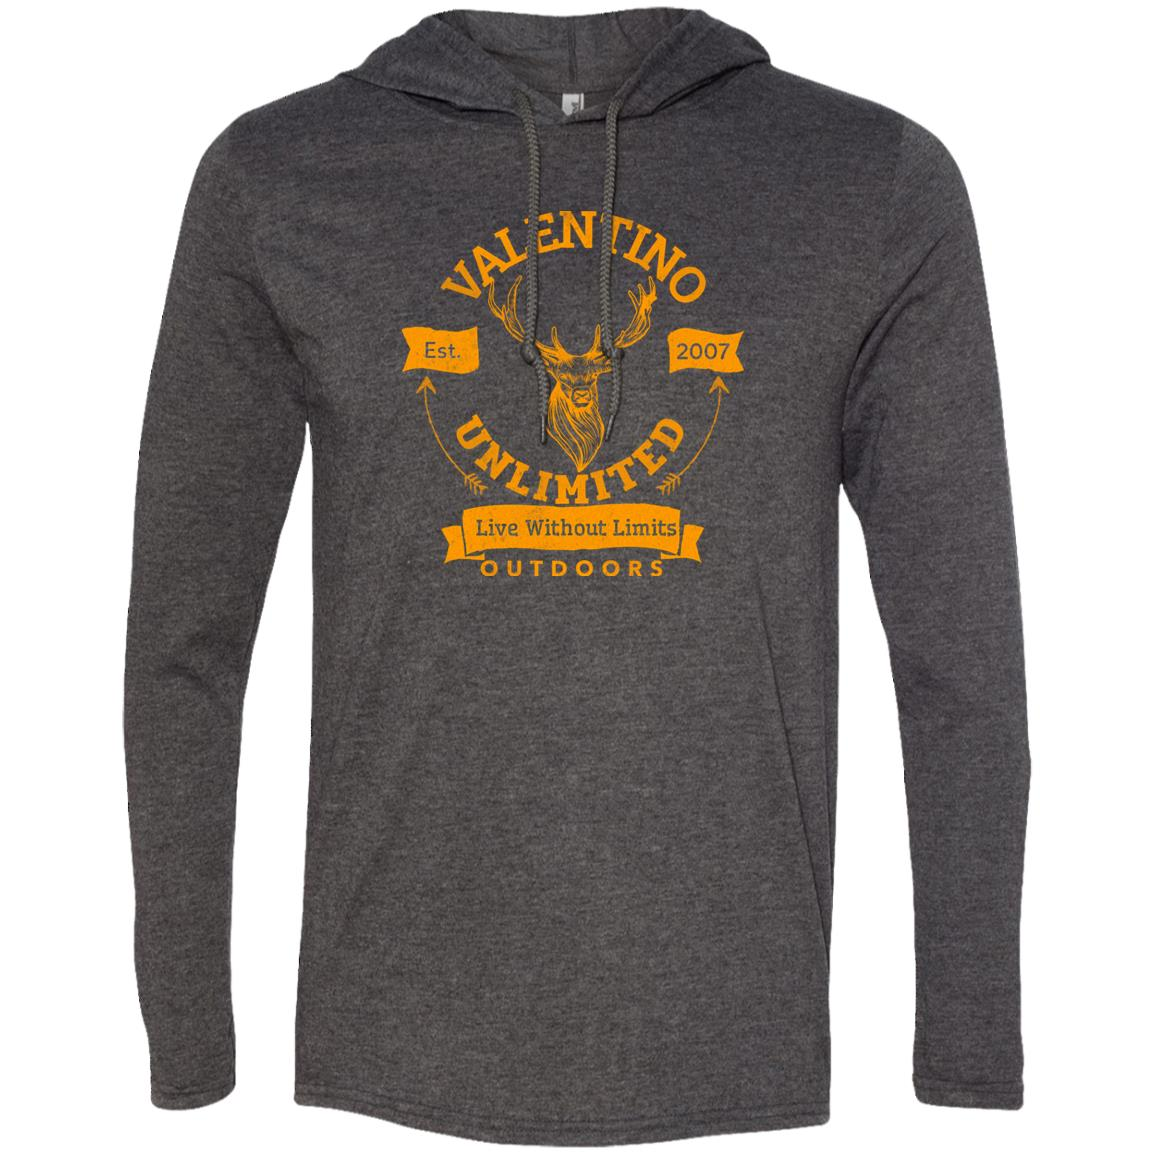 VALENTINO UNLIMITED OUTDOORS Deer Head LS T-Shirt Hoodie - Valentino Unlimited